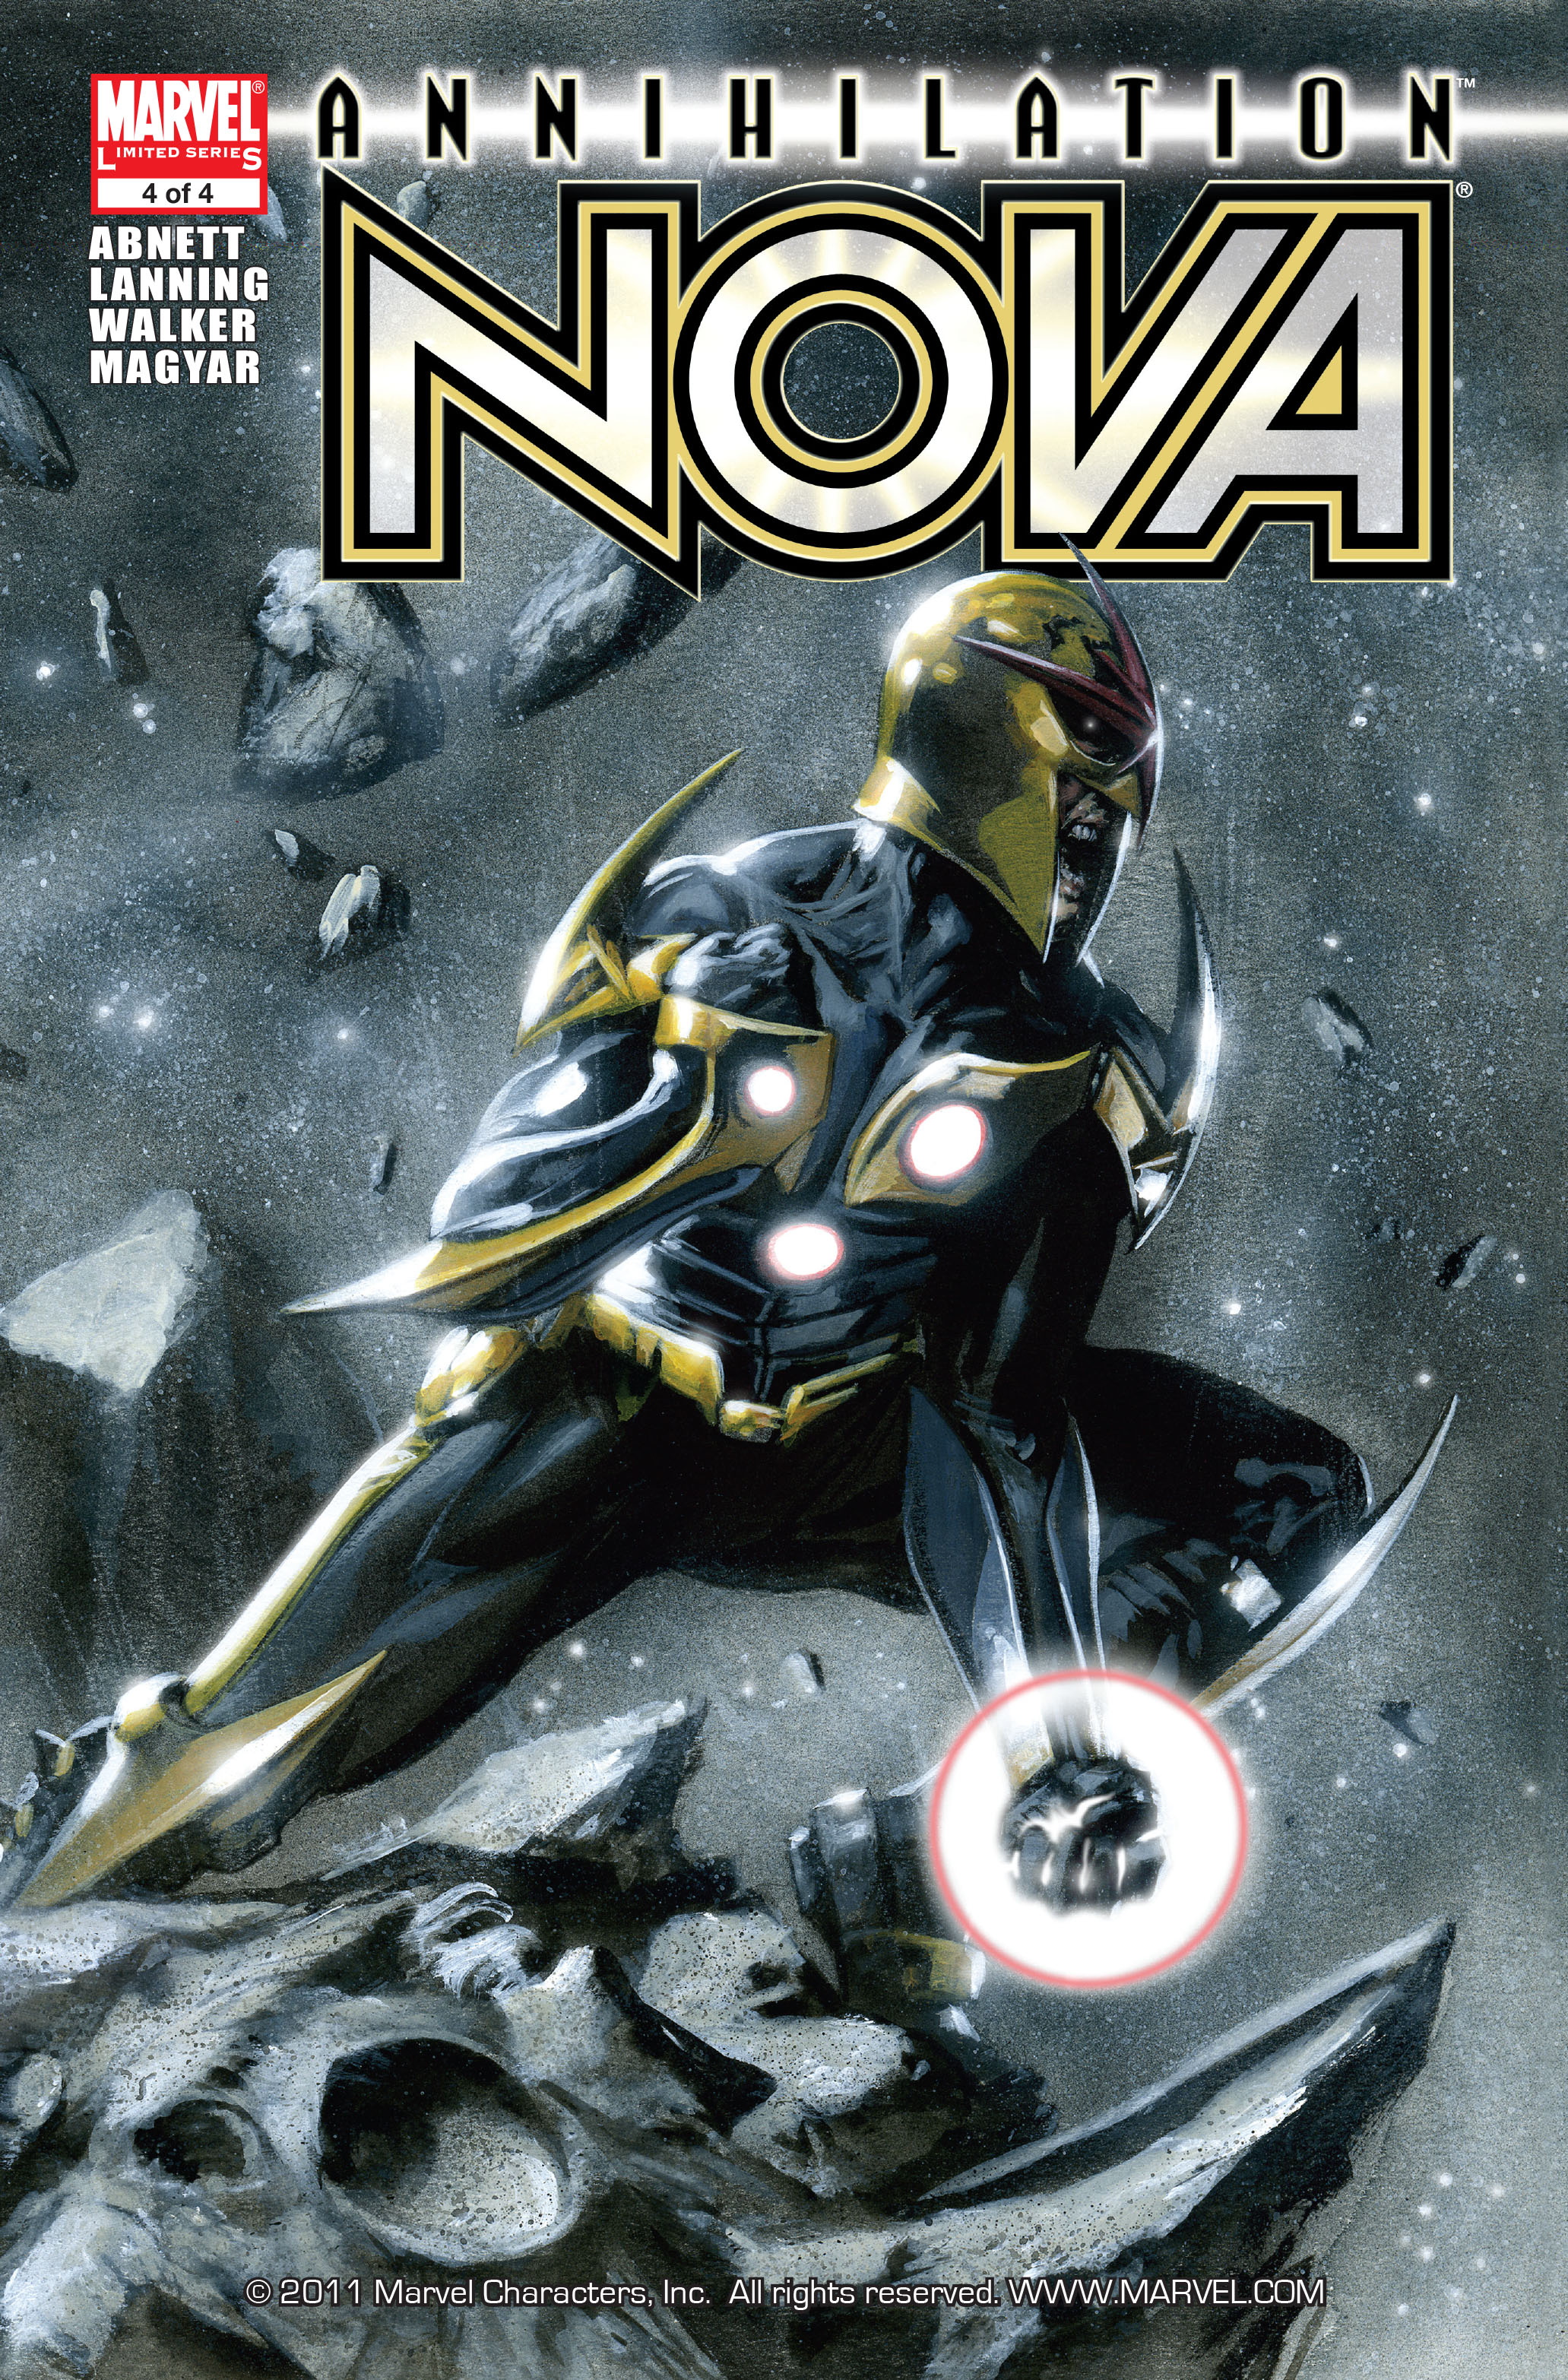 Read online Annihilation: Nova comic -  Issue #4 - 1